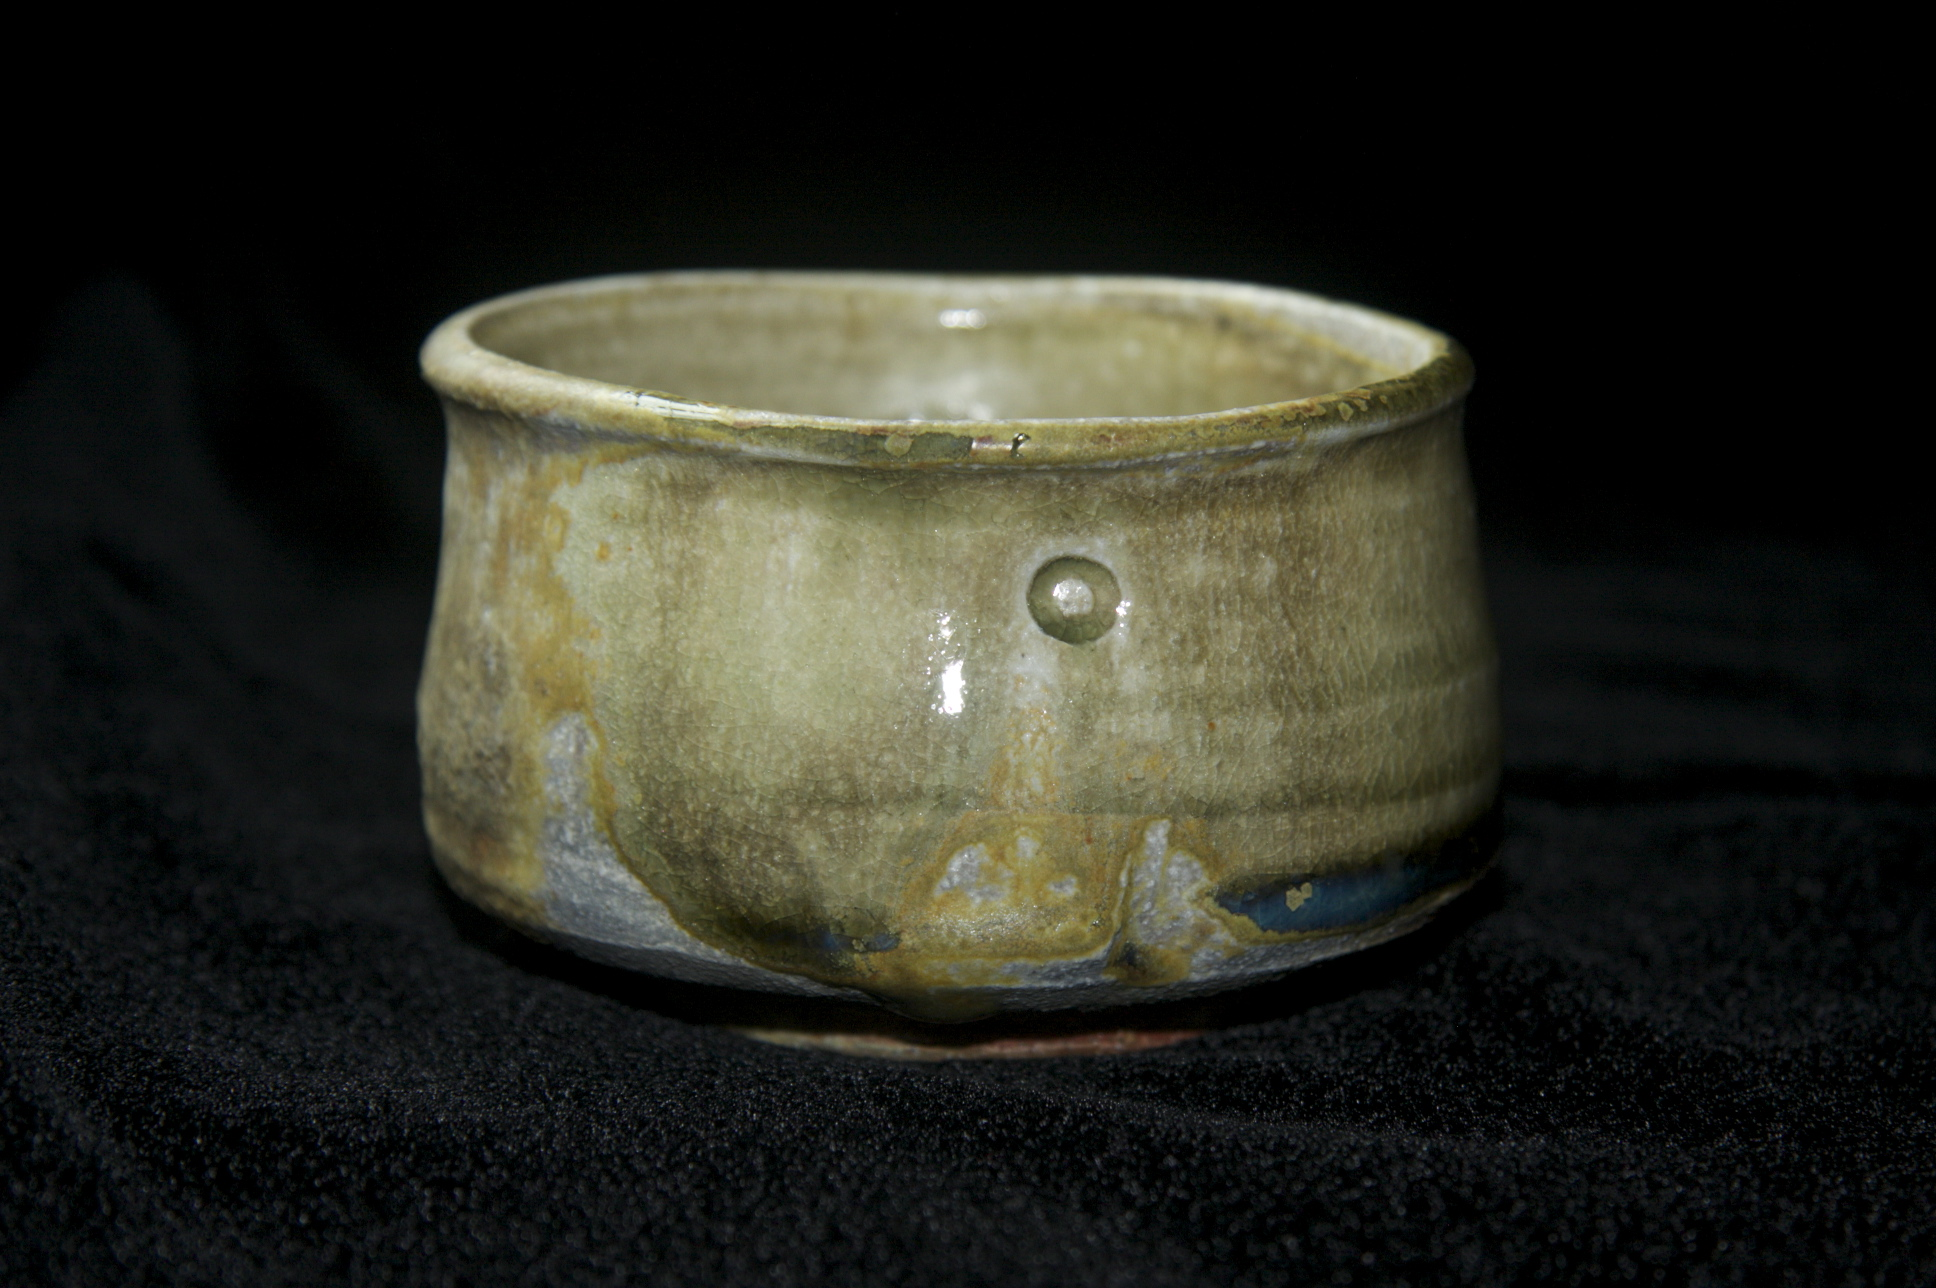 Wood-fired in a noborigama kiln for 30 hours, glazed with korean celadon